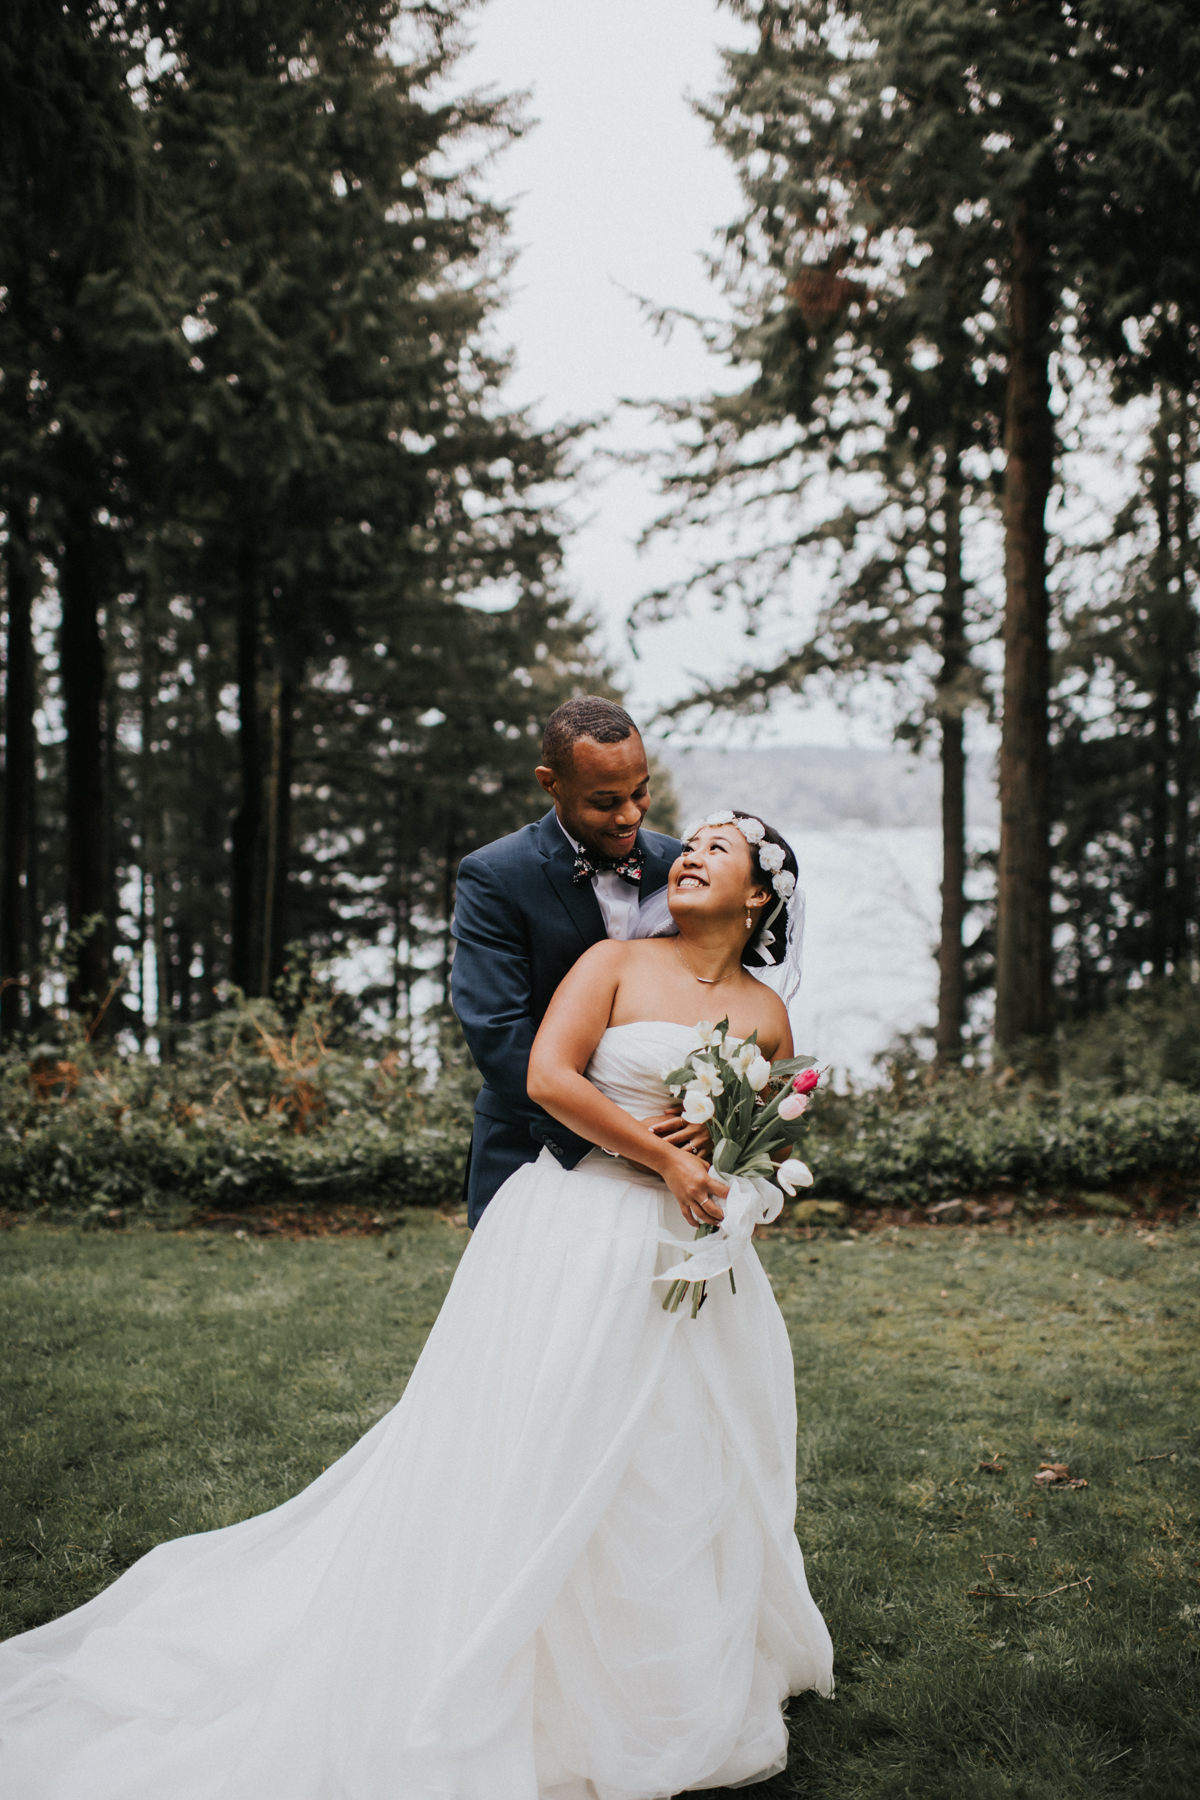 Wedding at Canterwood Country Club in Gig Harbor | Cassie & Payton